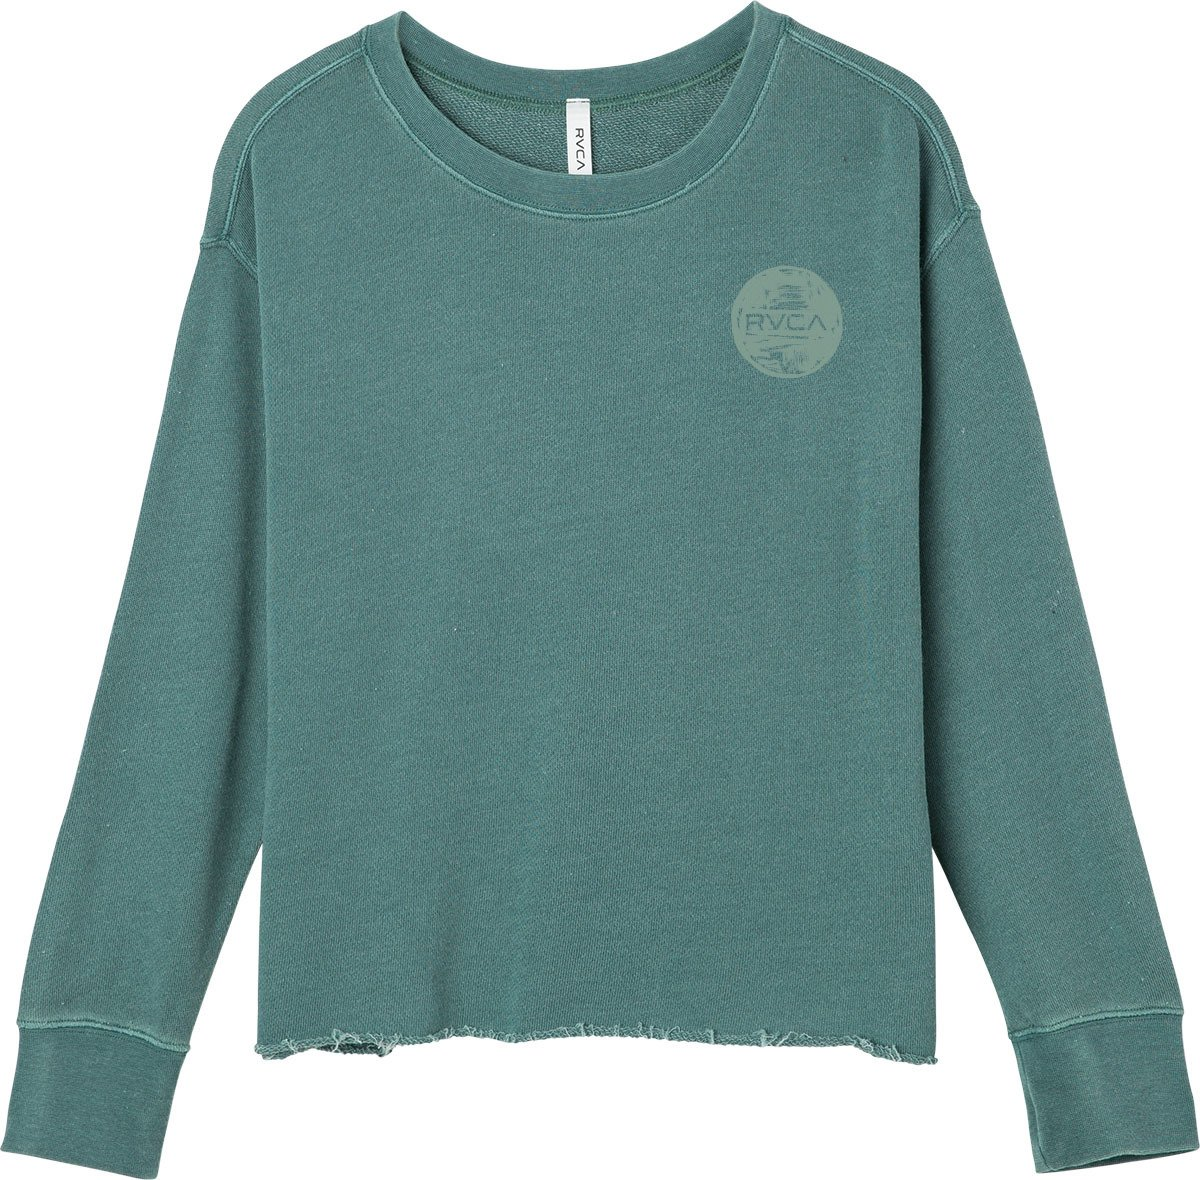 RVCA Junior's Brush Dot Crew Neck Sweatshirt, Silver/Green, M